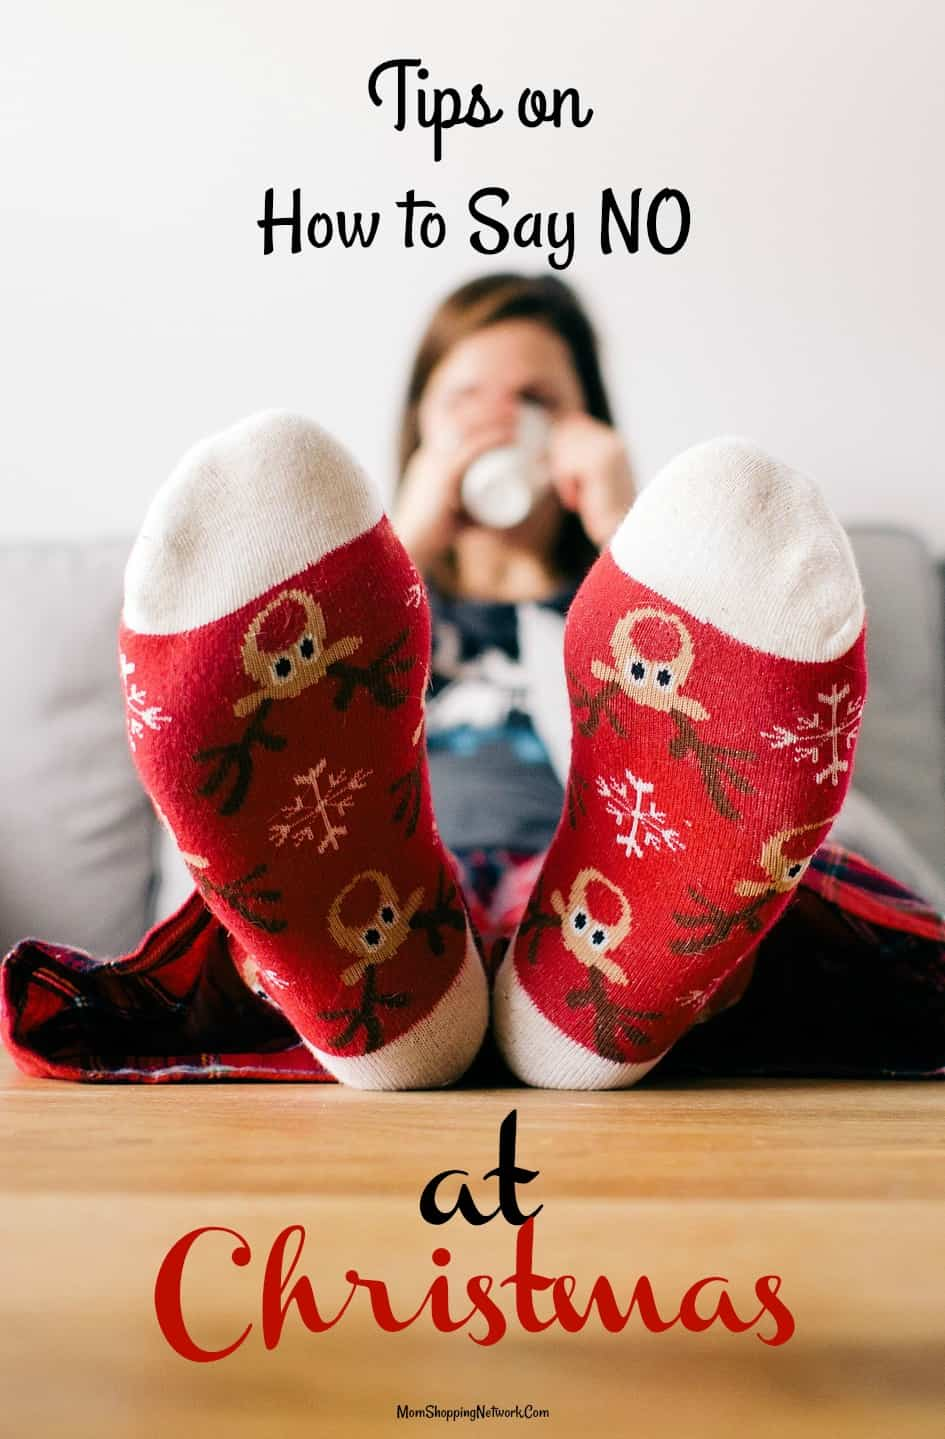 These tips on how to say NO at Christmas will help you keep your sanity this holiday season! How to say no|How to say no nicely|how to say no tips|Holiday tips|Christmas tips